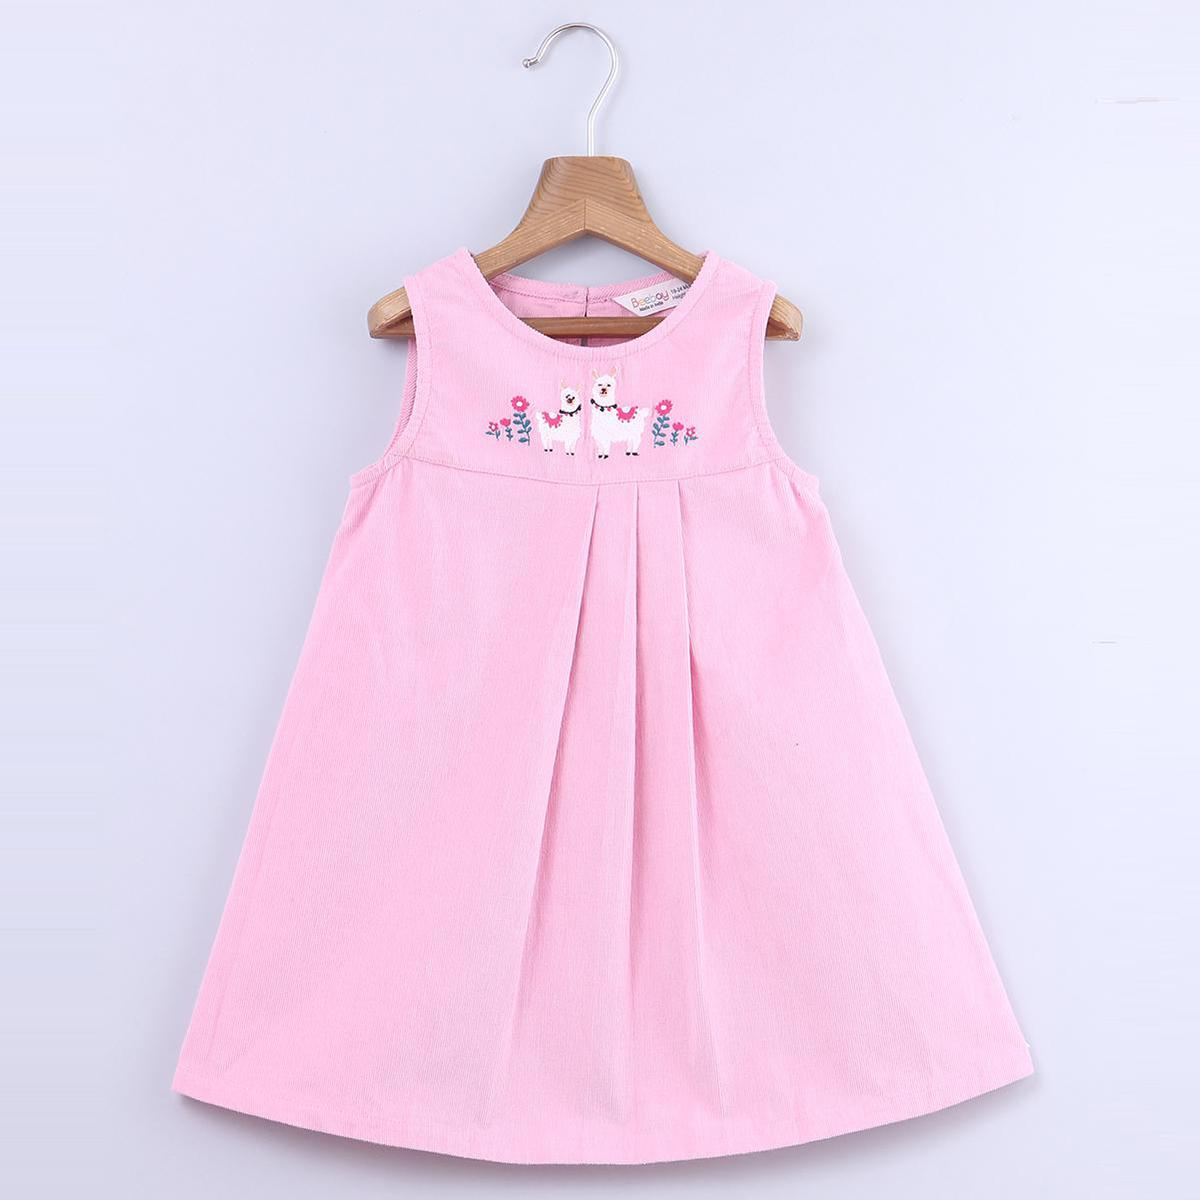 Beebay - Pink Colored Llama Embroidery Corduroy Cotton Dress For Infants Girls